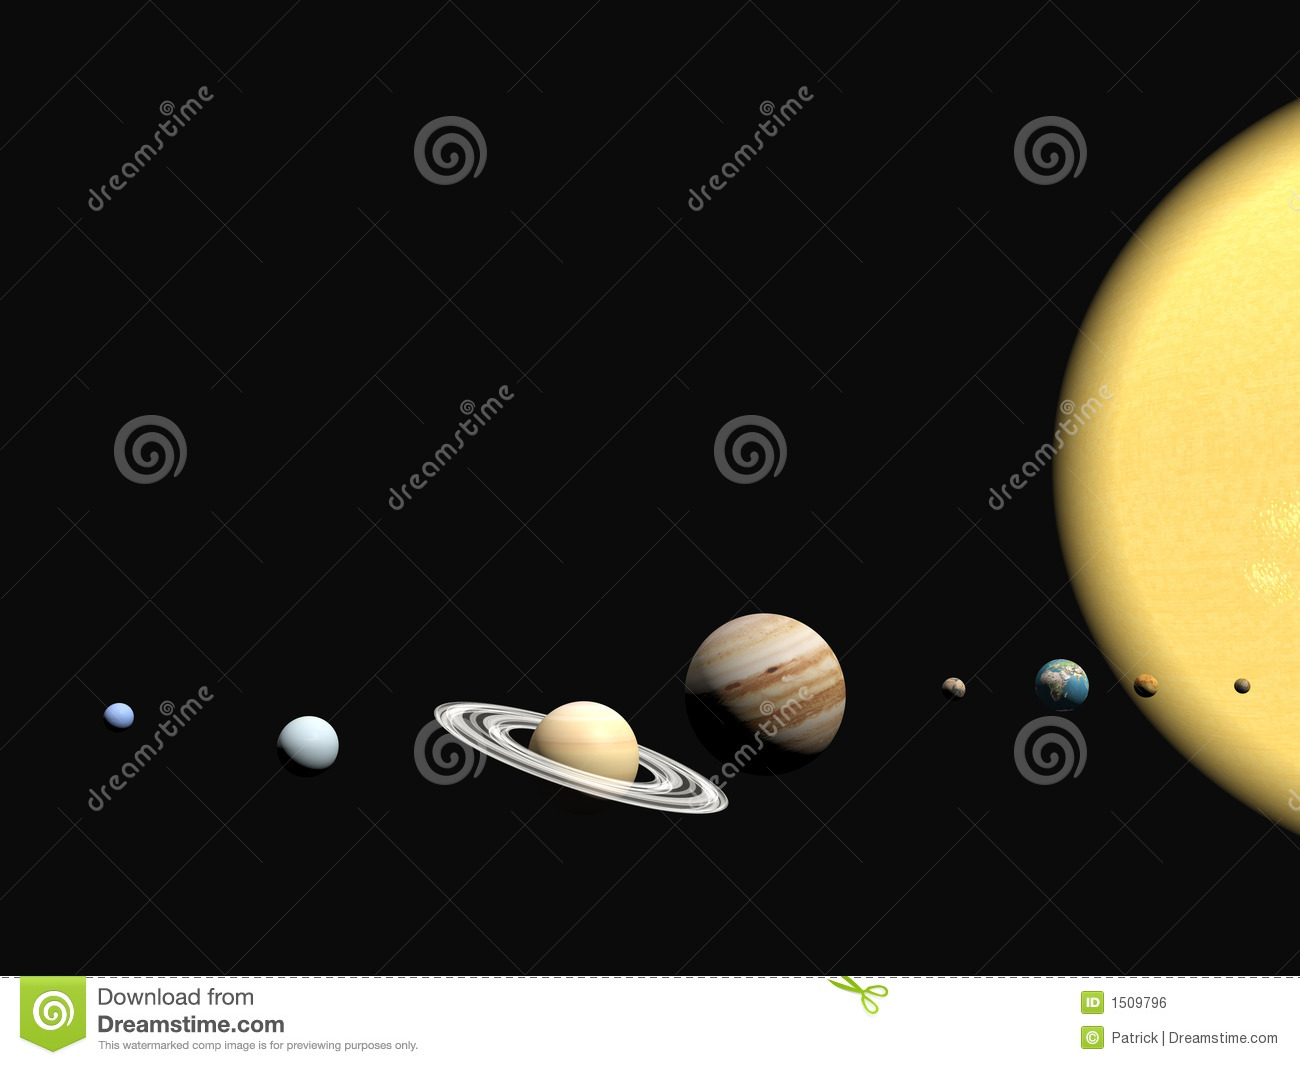 the solar system abstact presentation stock illustration